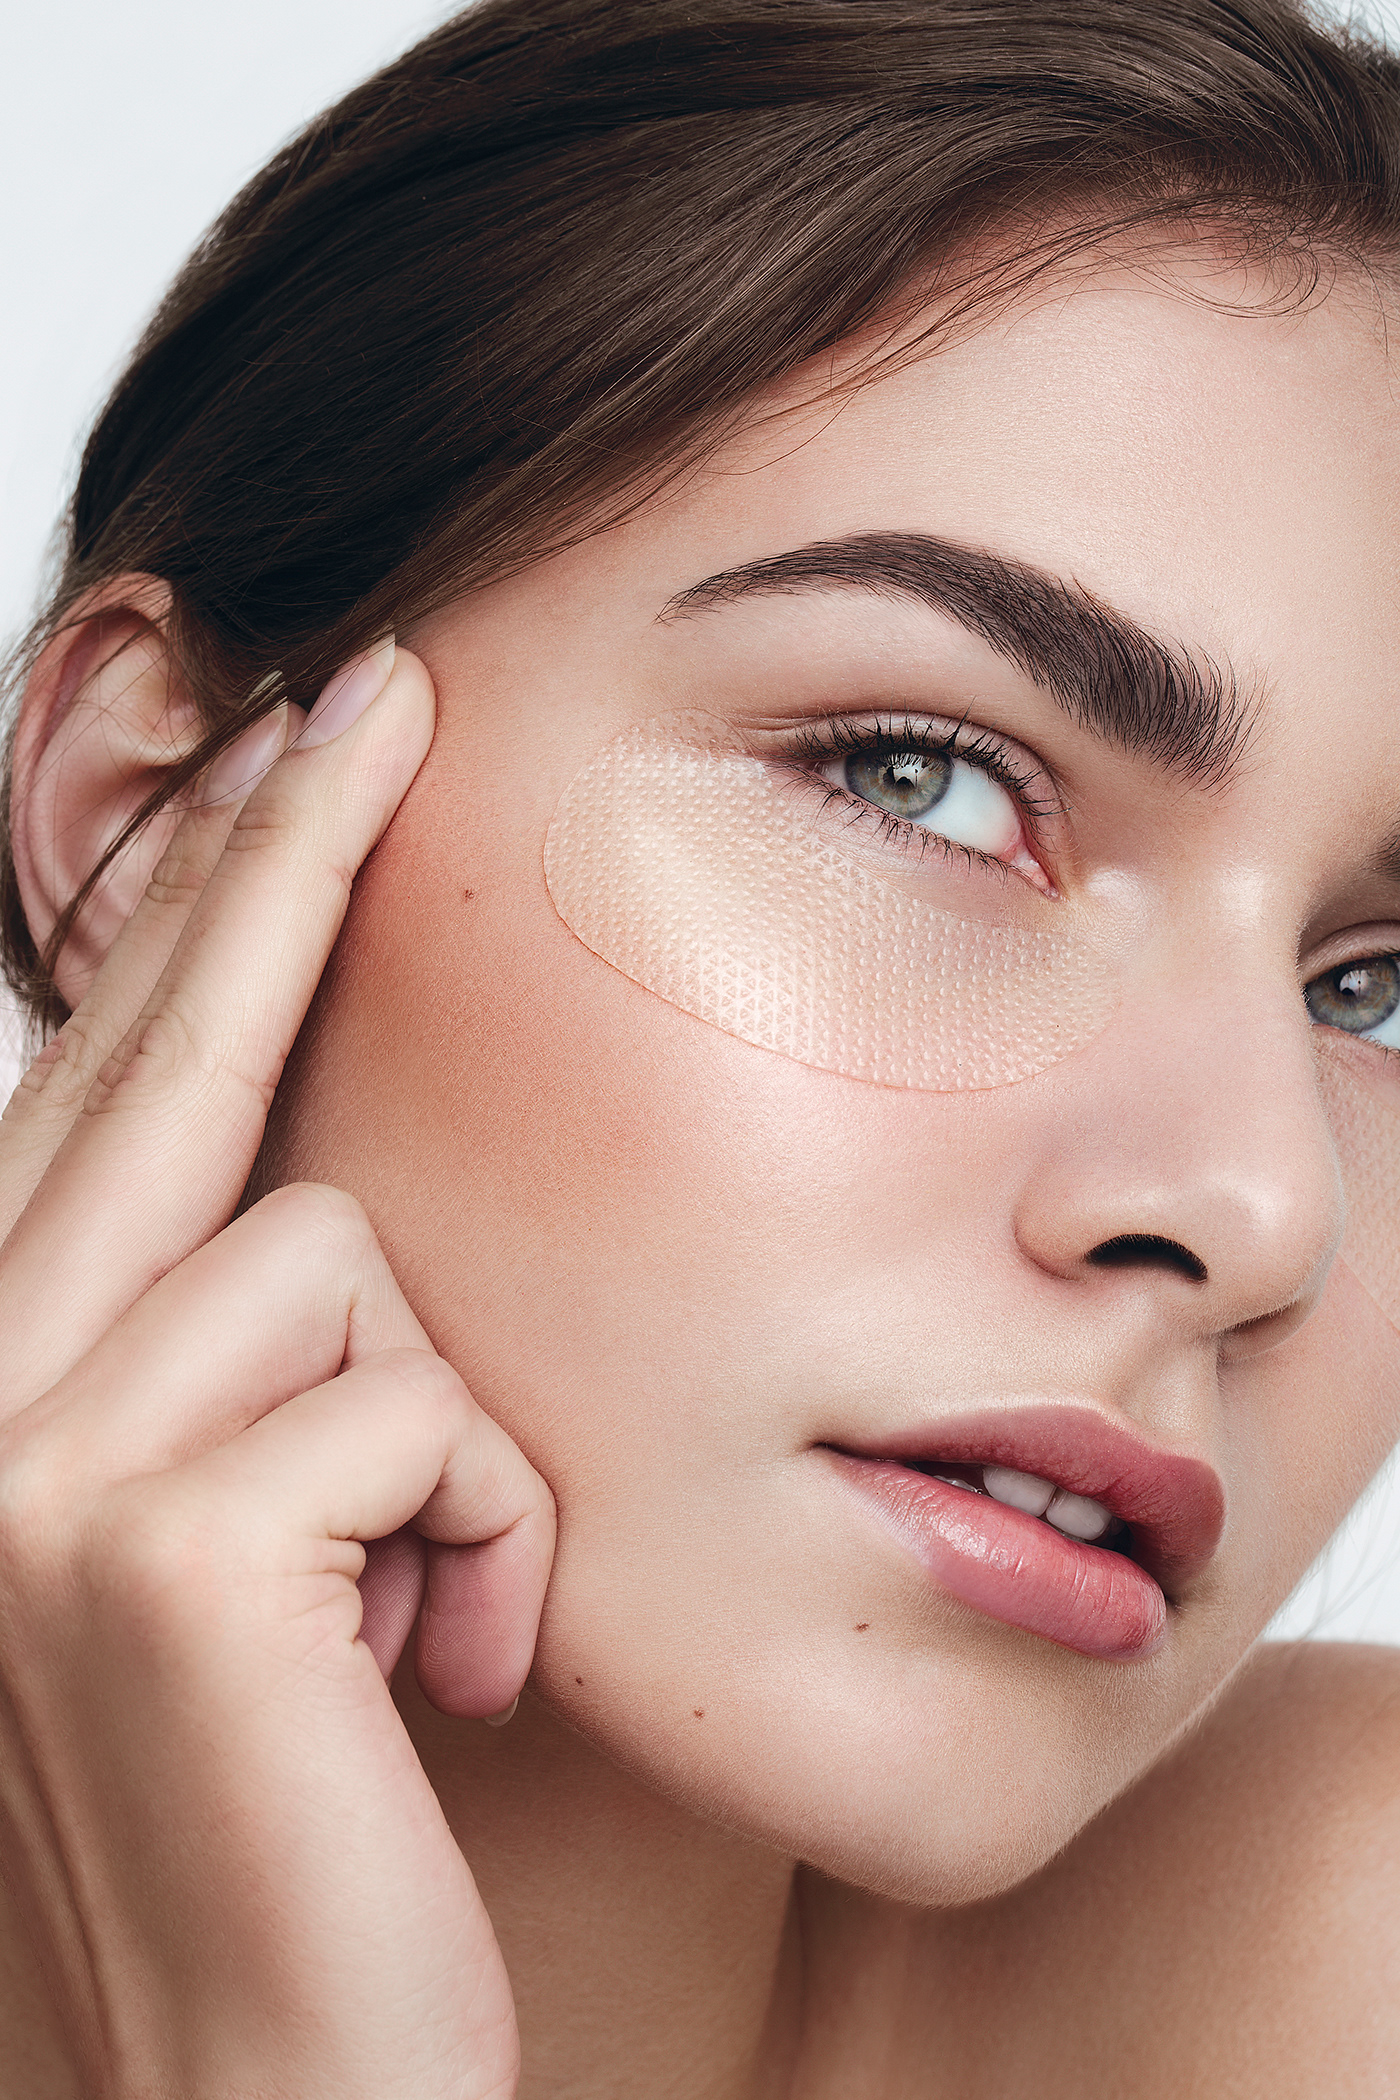 beauty beauty retouch Make Up Cosmetic postproduction photograph reotuch photoshop